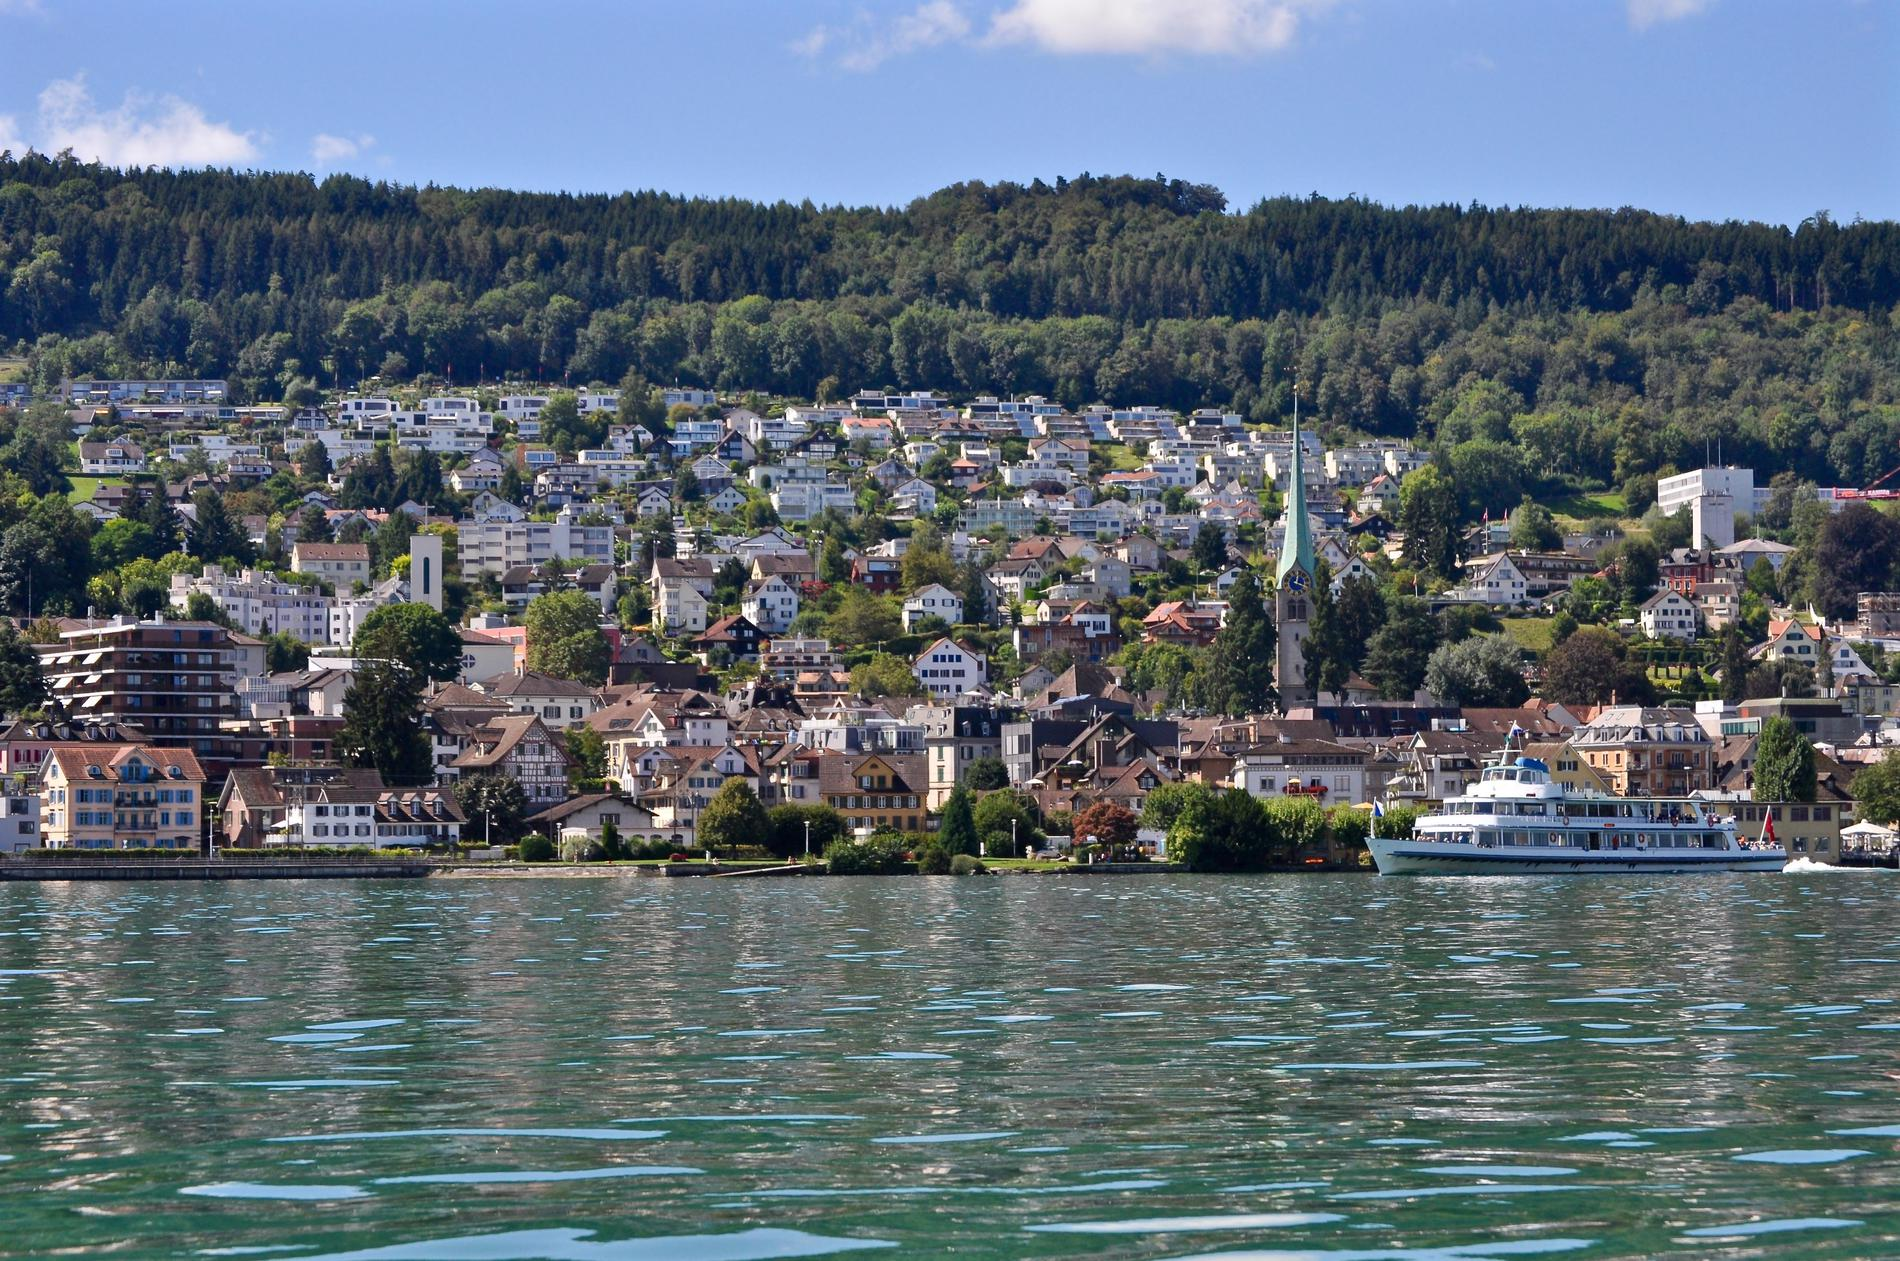 Panorama Horgen